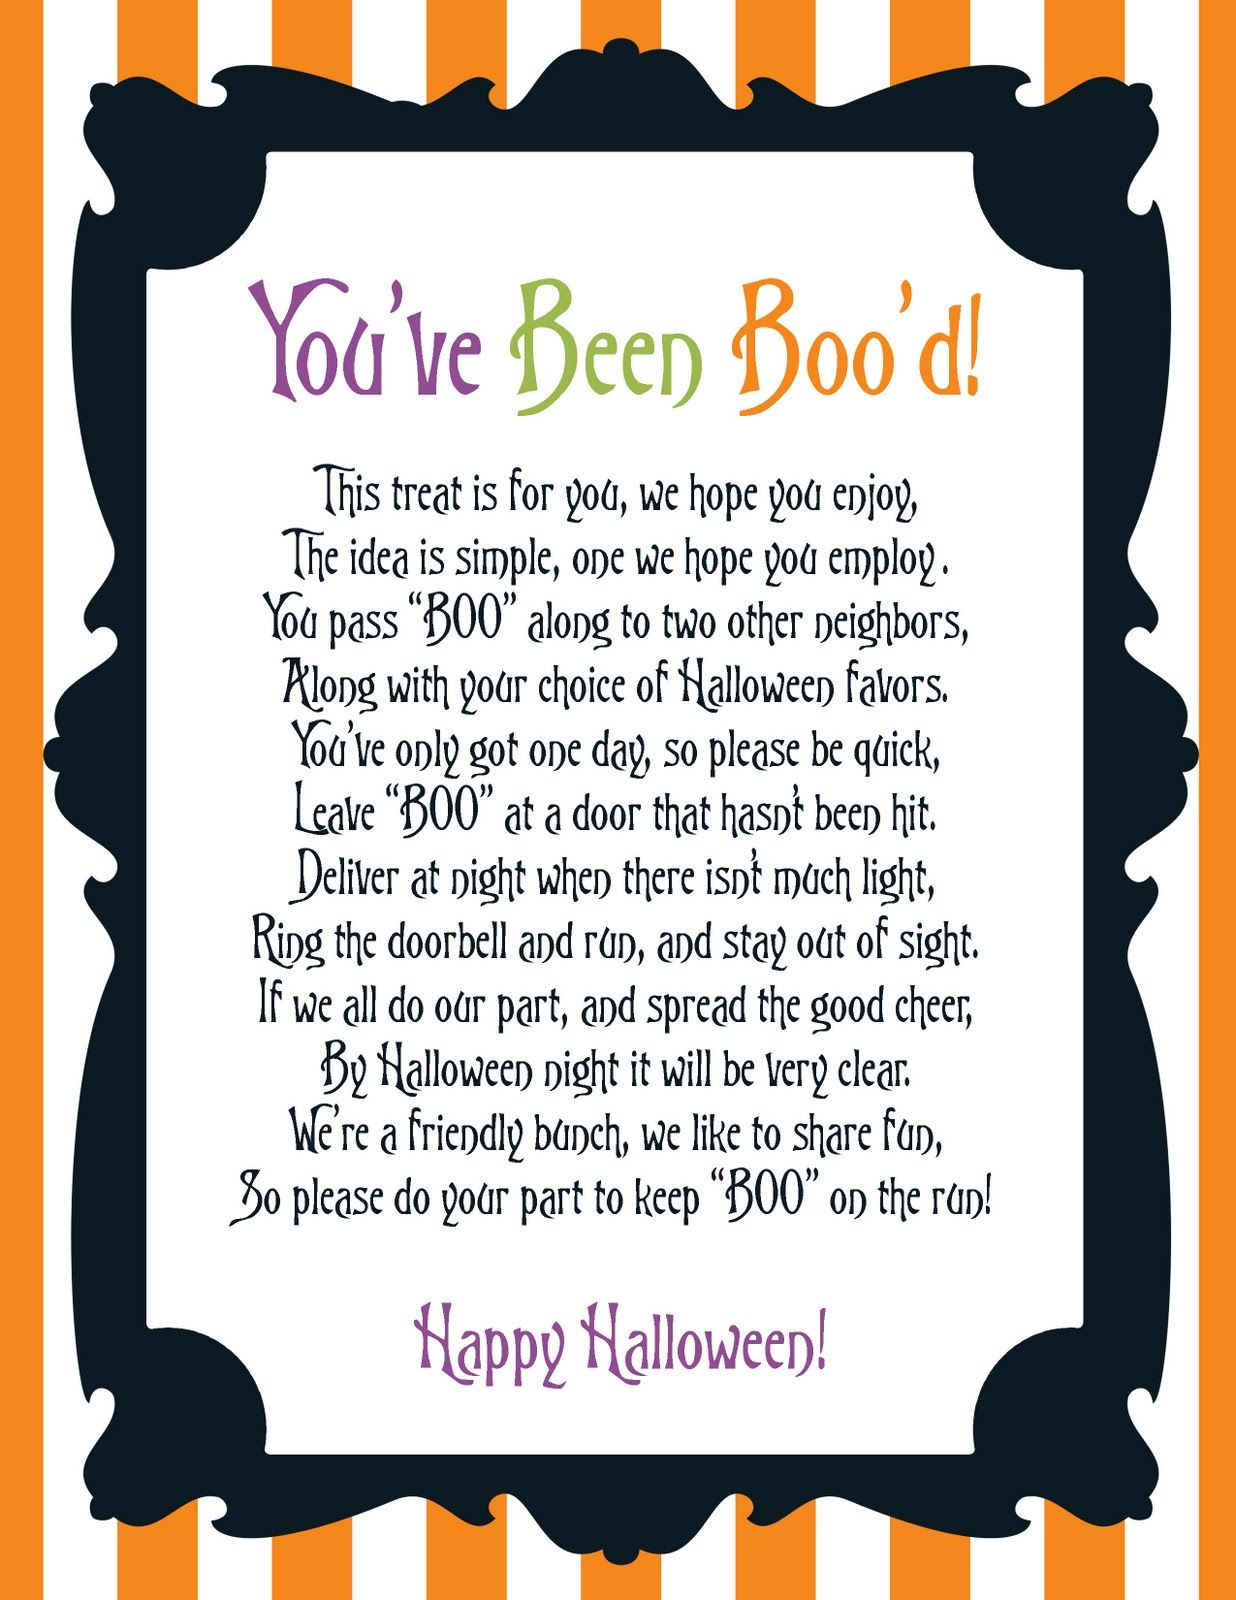 image about You've Been Booed Printable Pdf identified as Get together NV: Freebie Friday Youve Been Bood Halloween